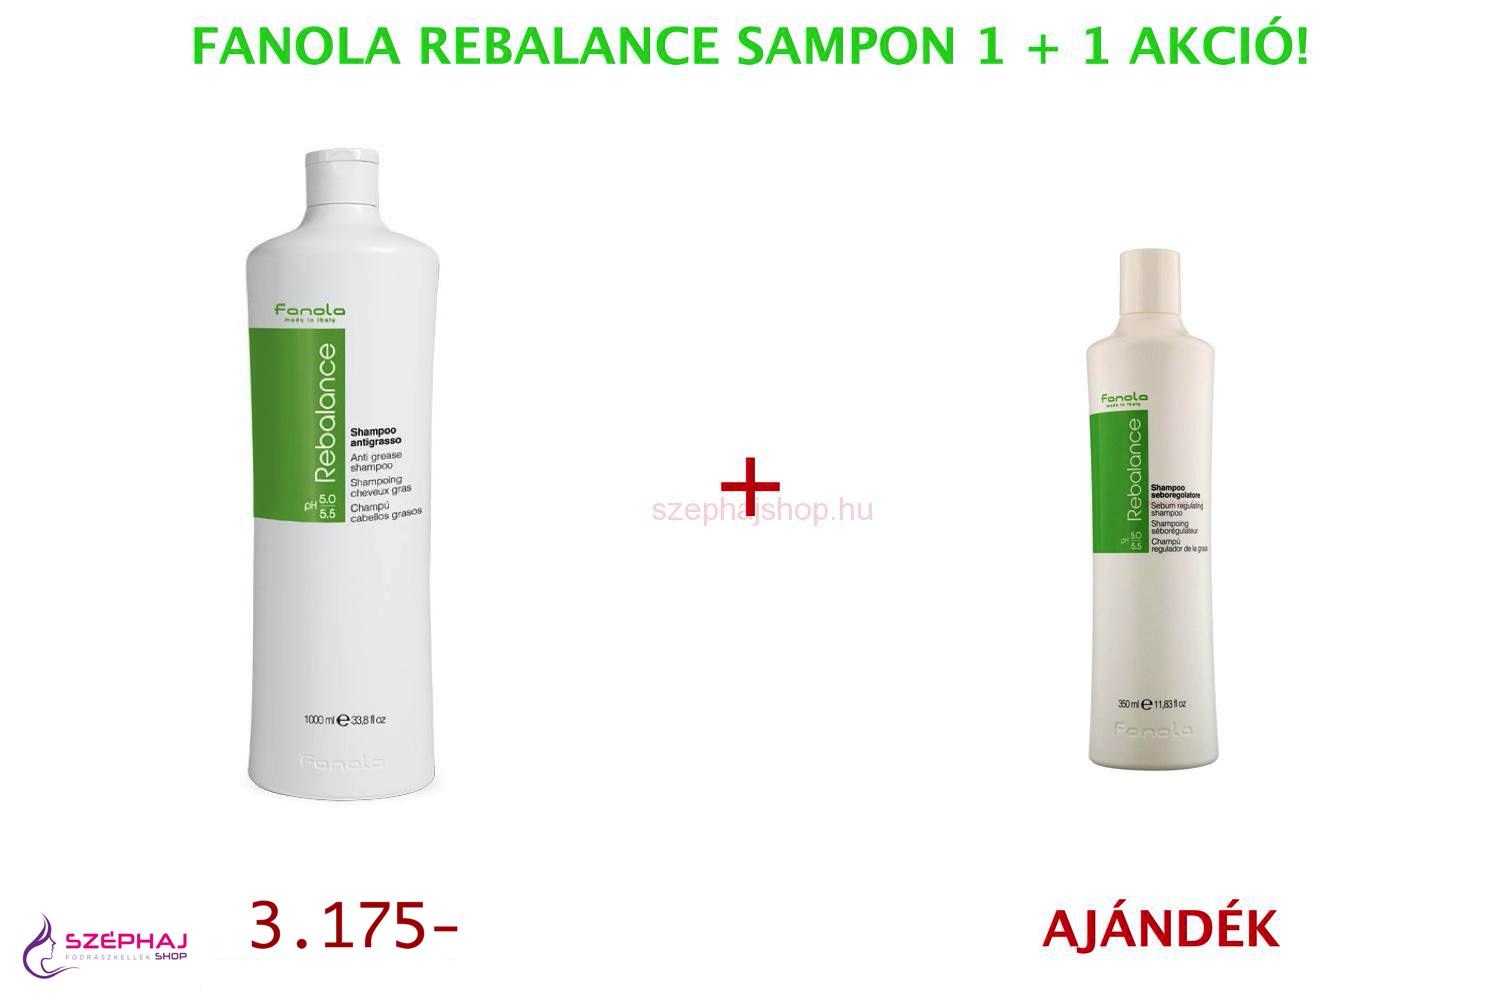 FANOLA Rebalance Anti Grease Shampoo 1000 ml 1+1 AKCIÓ